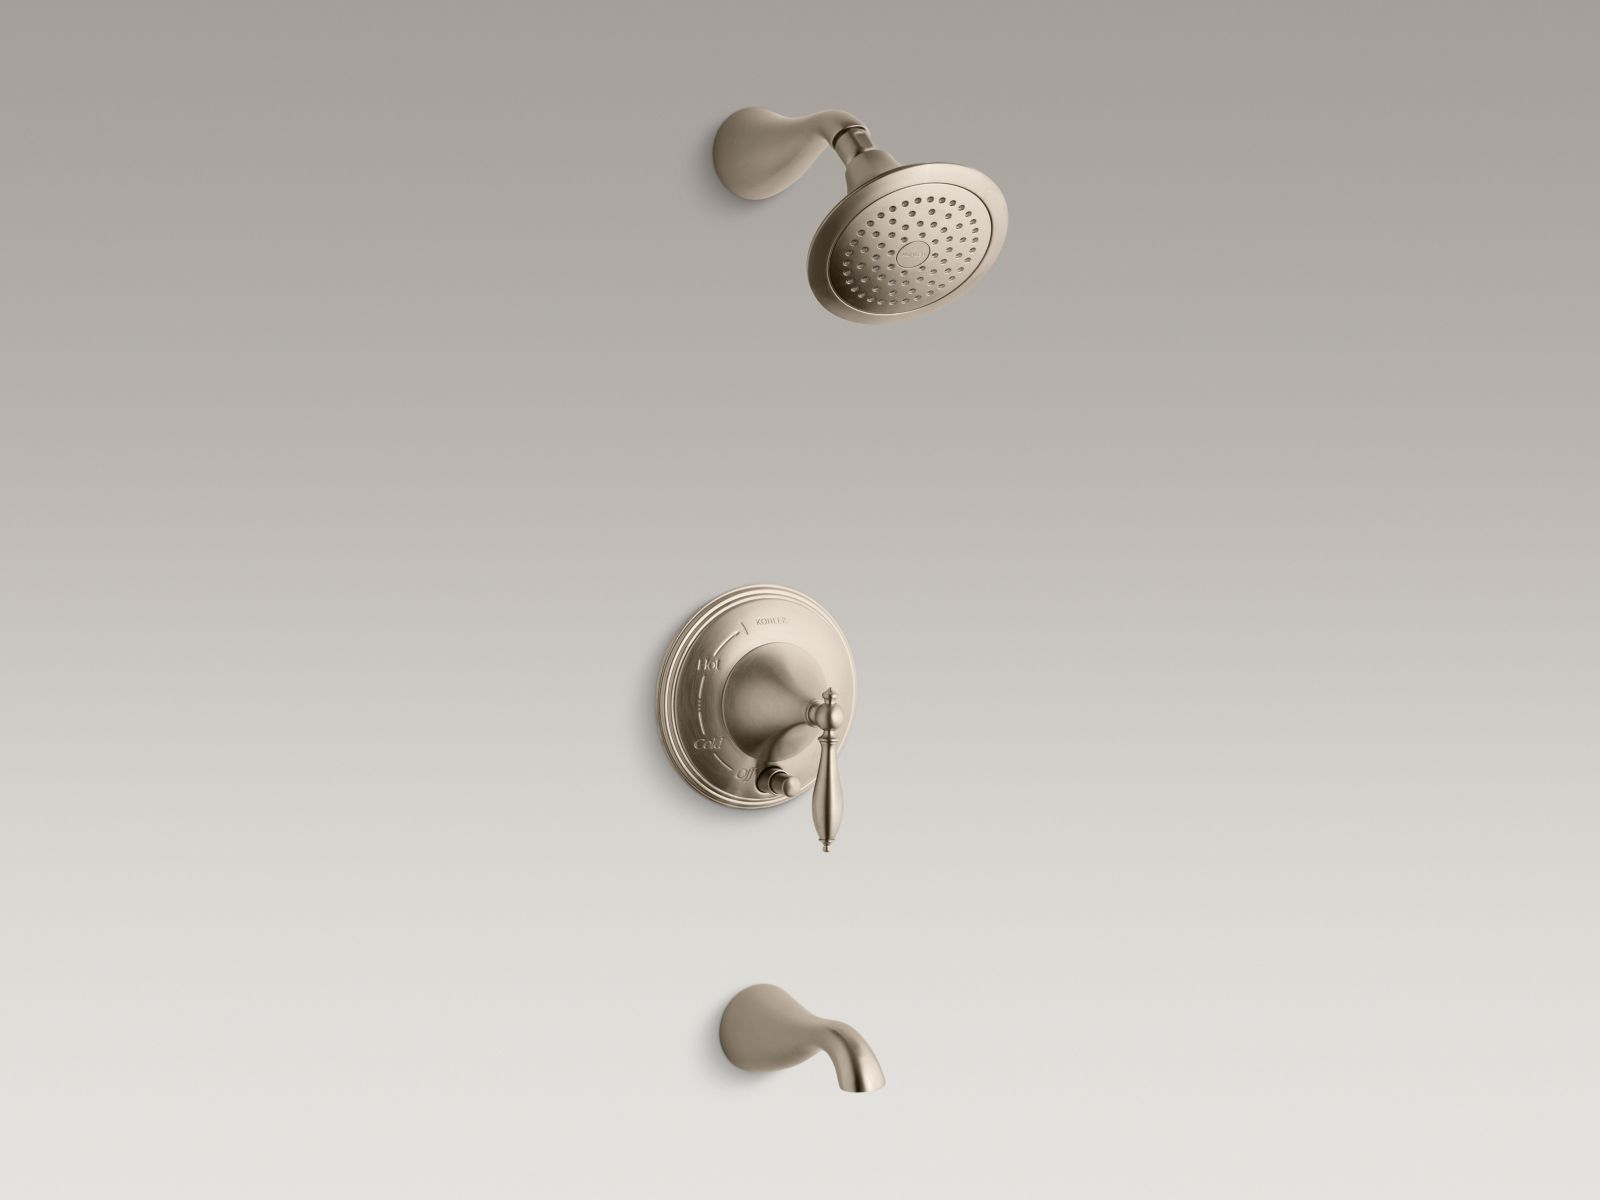 Kohler Finial® K-T312-4M-BV Rite-Temp® pressure-balancing bath and shower faucet trim with push-button diverter and lever handle, valve not included Vibrant Brushed Bronze